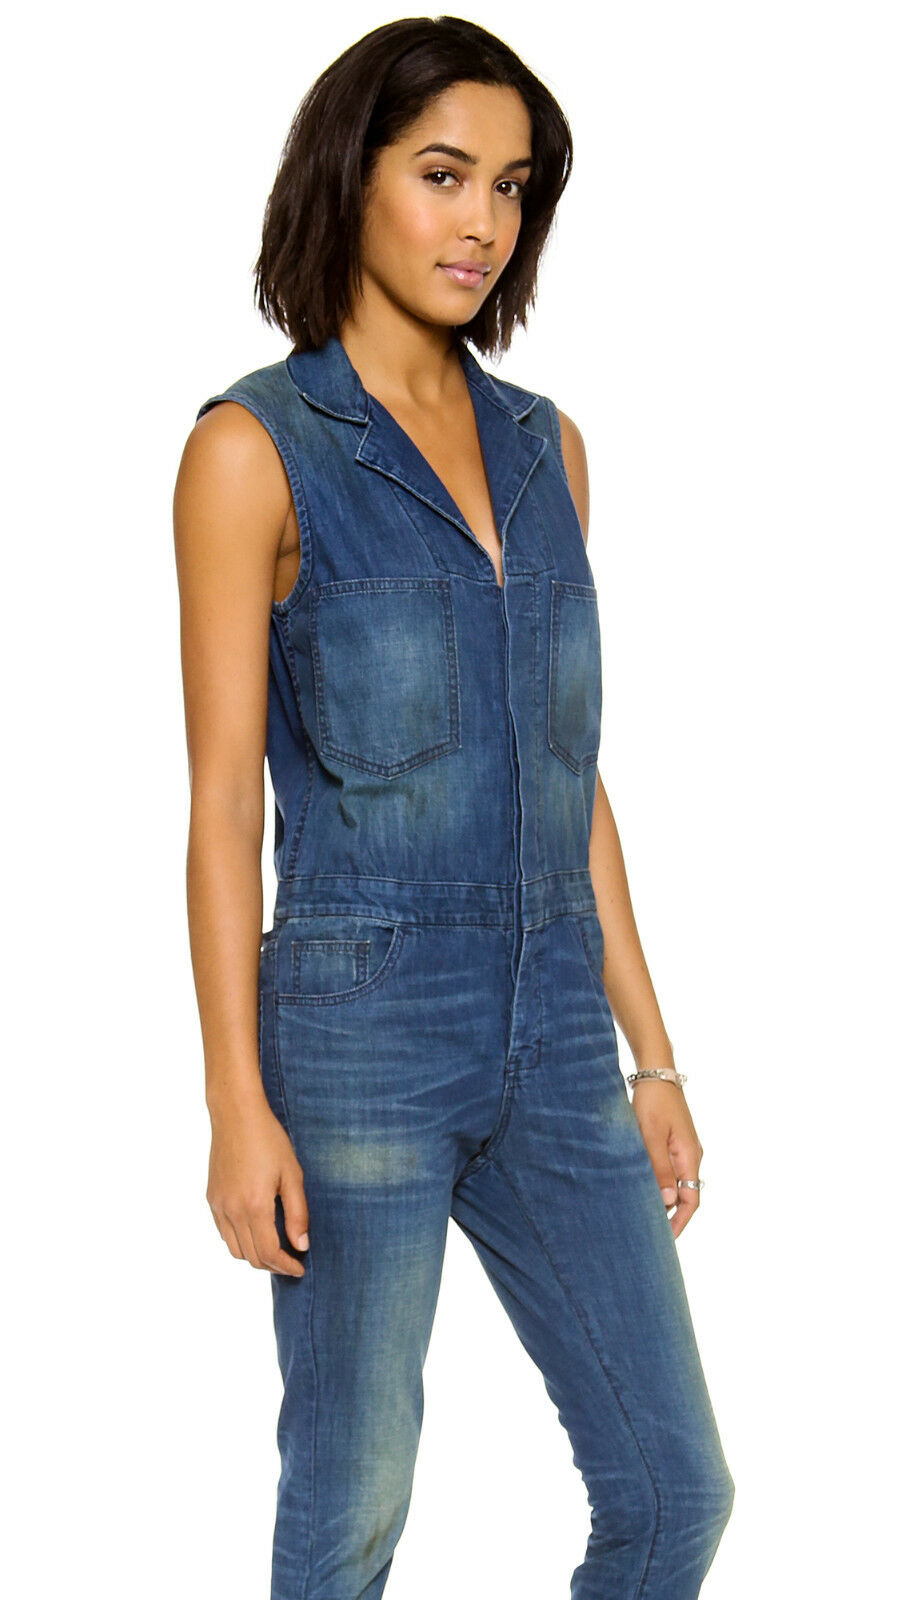 NWD 6397 Women's Faded Dark bluee Sleeveless Denim Jumpsuit